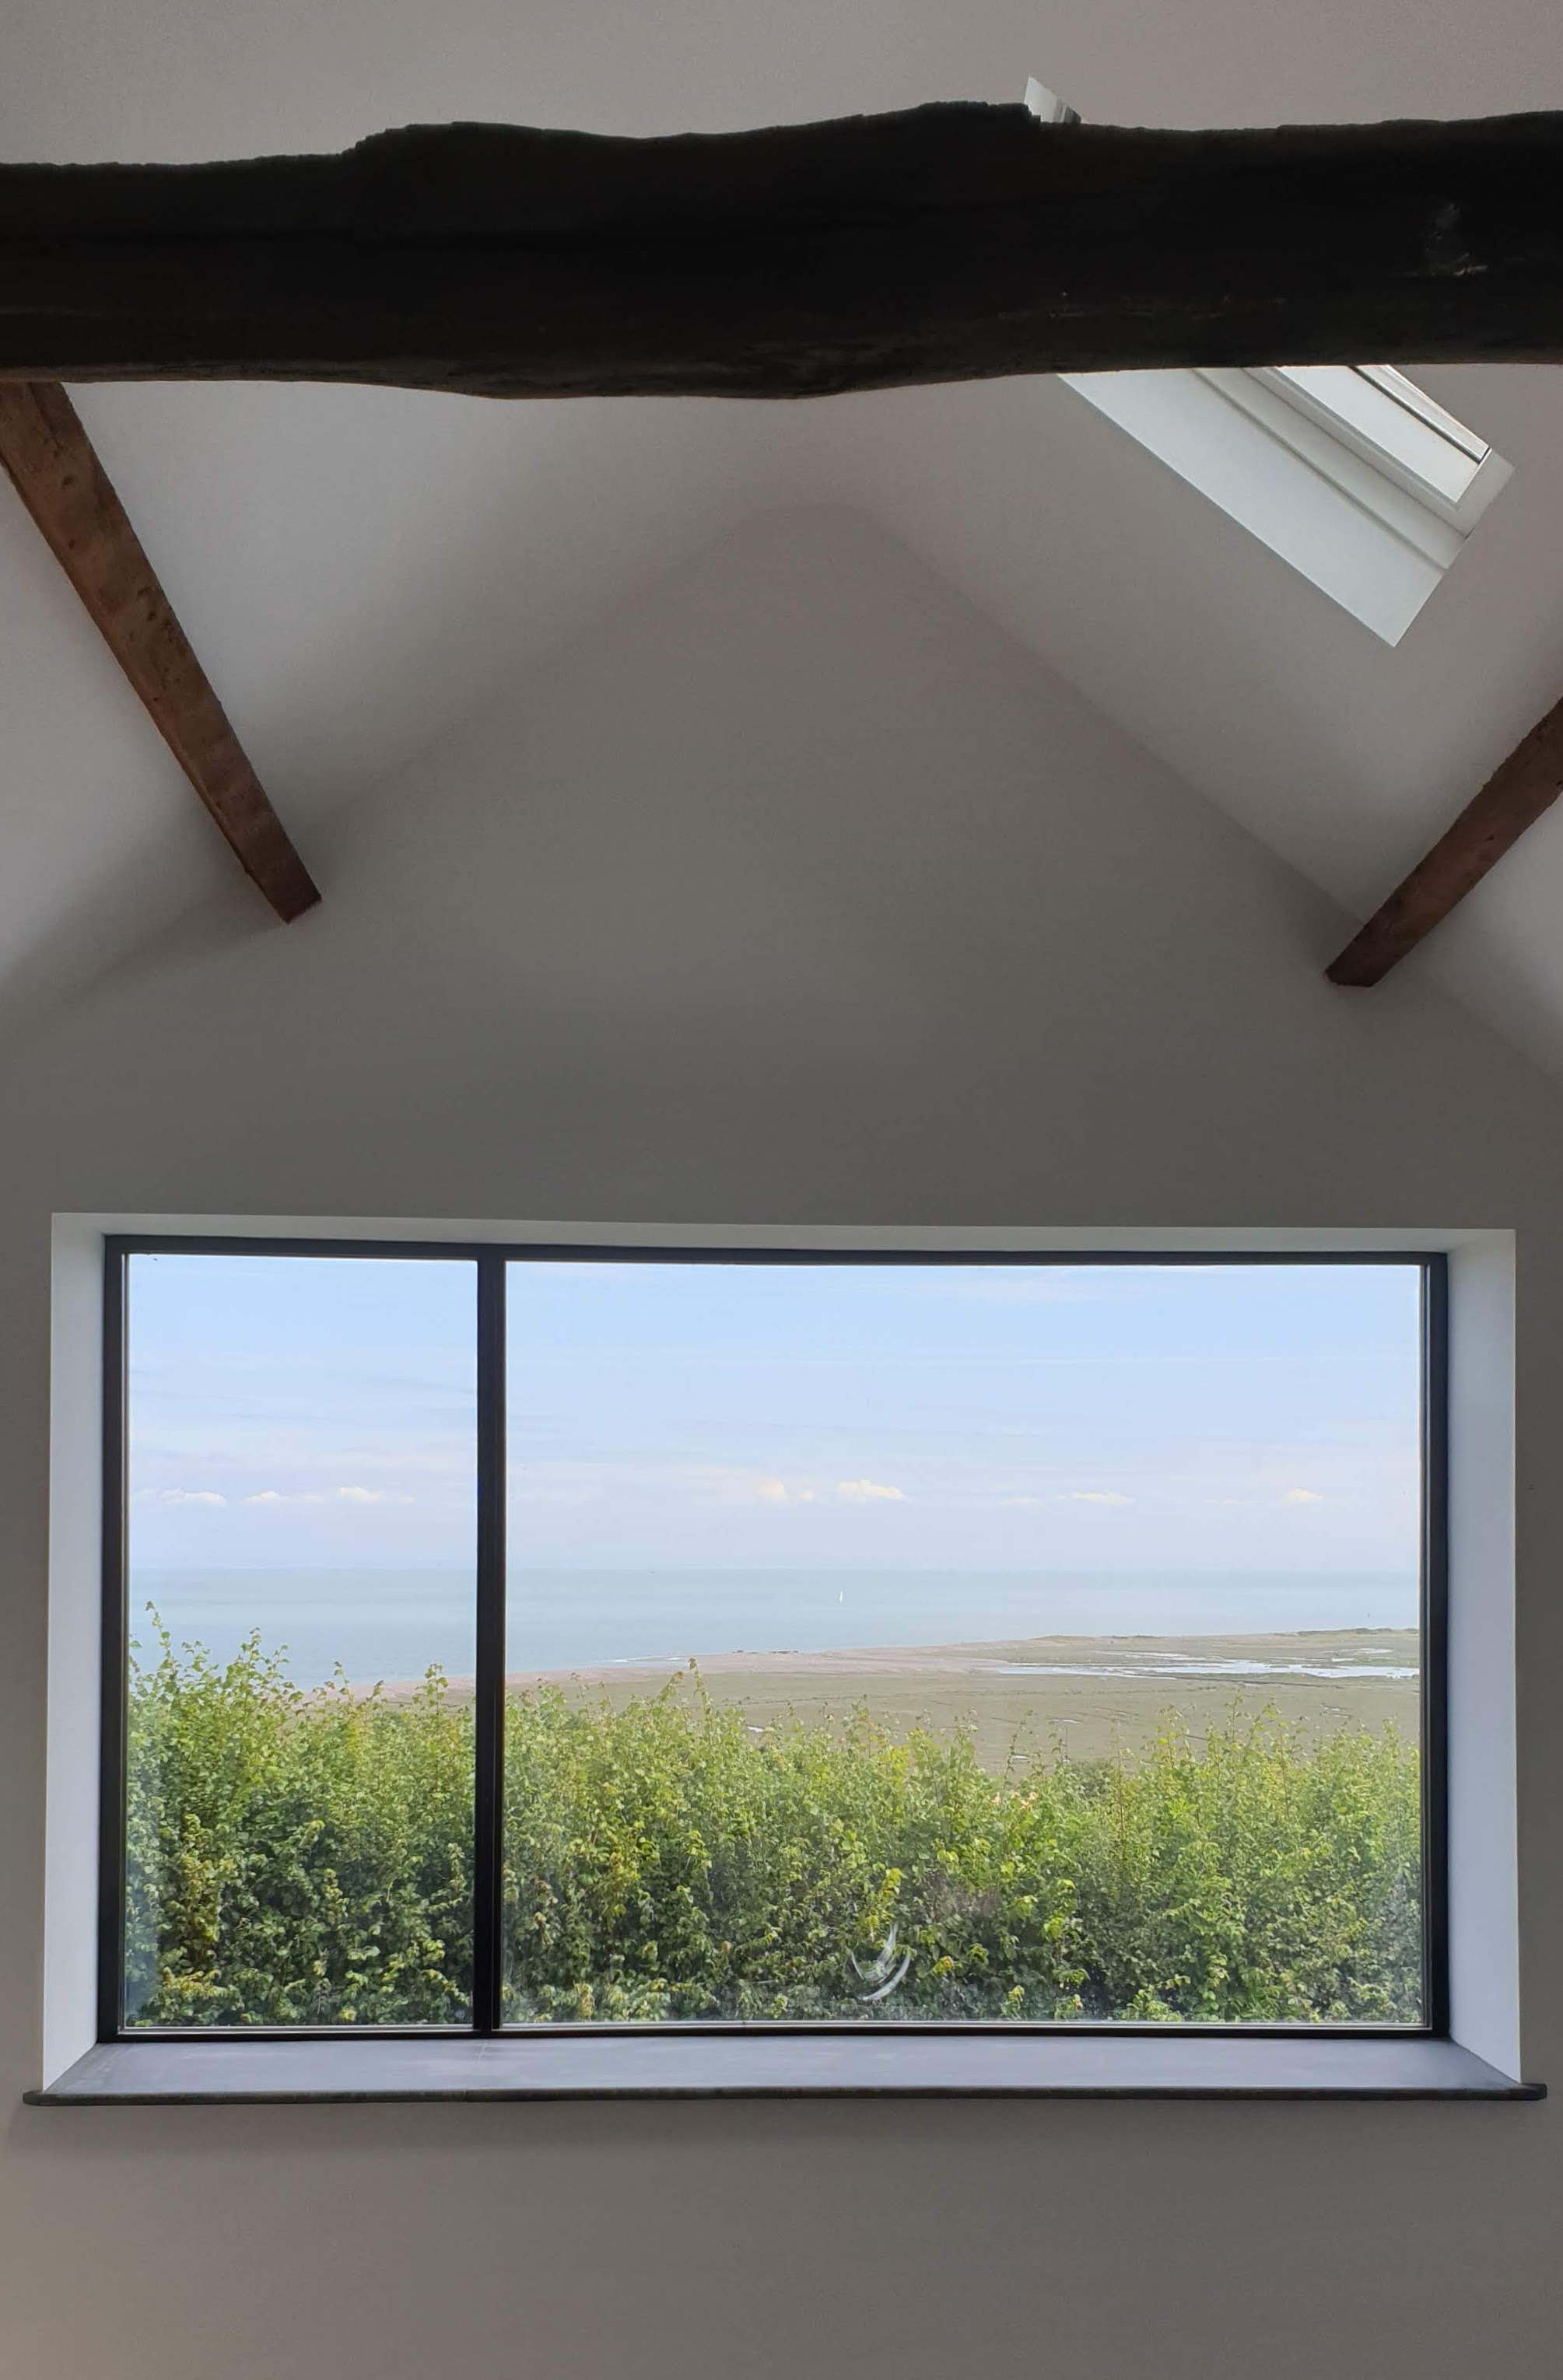 forge-planning-approval-exmoor-nick-thorne-vaulted-ceiling